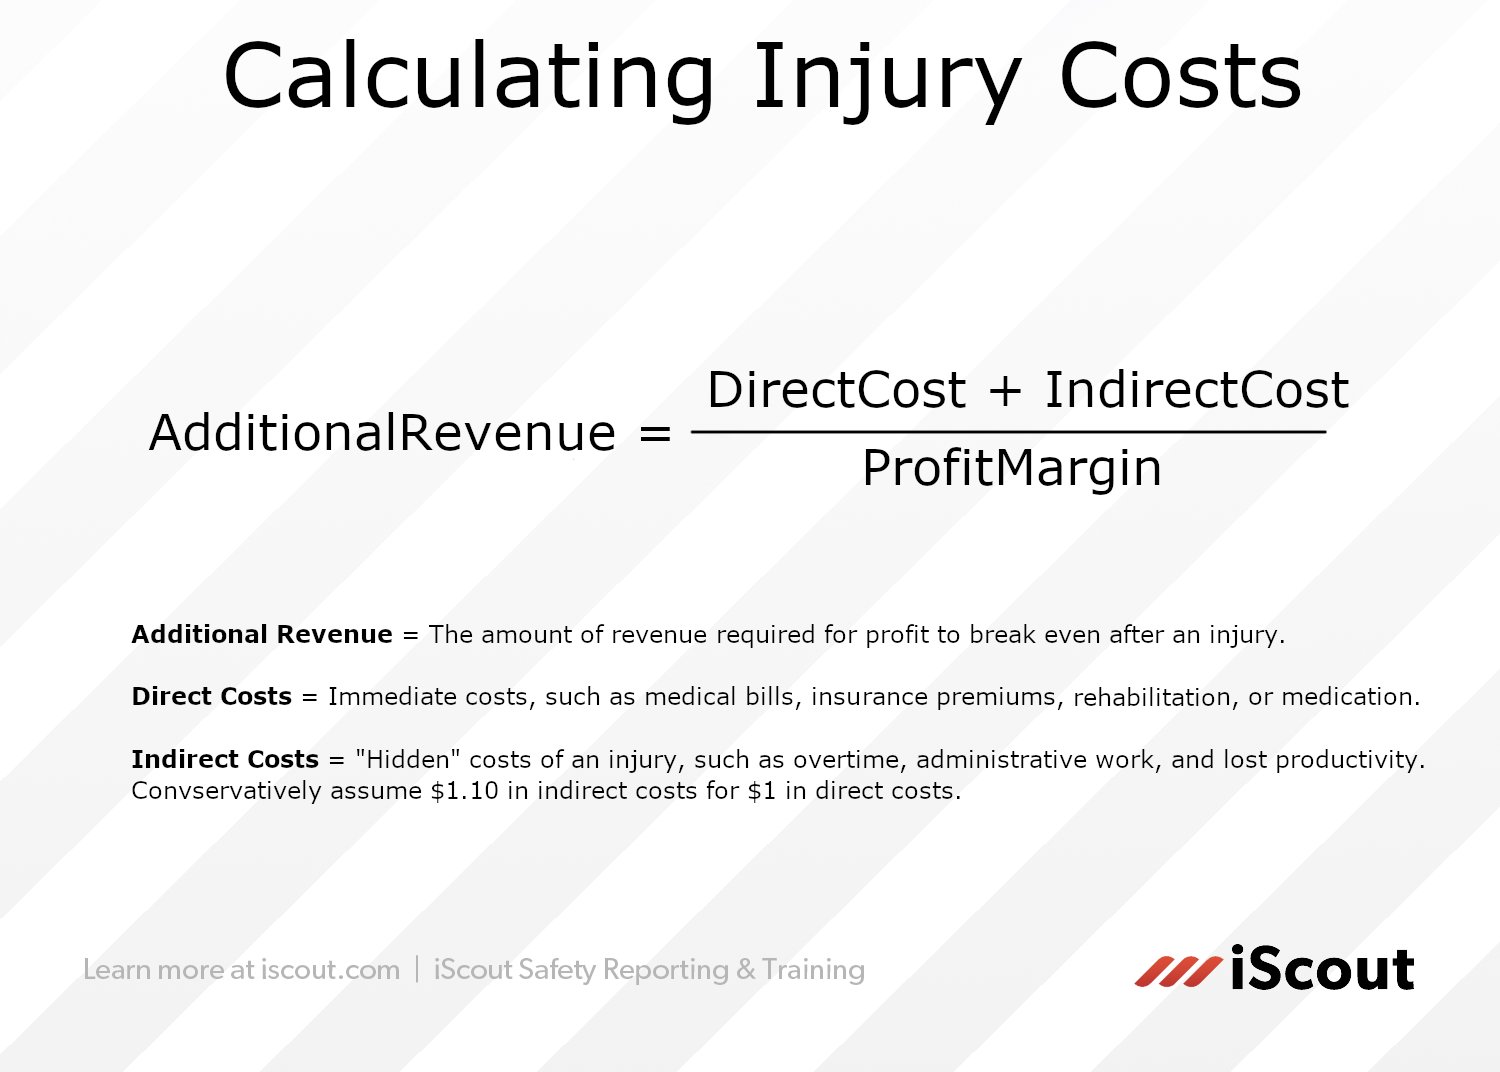 formula for calculating injury costs